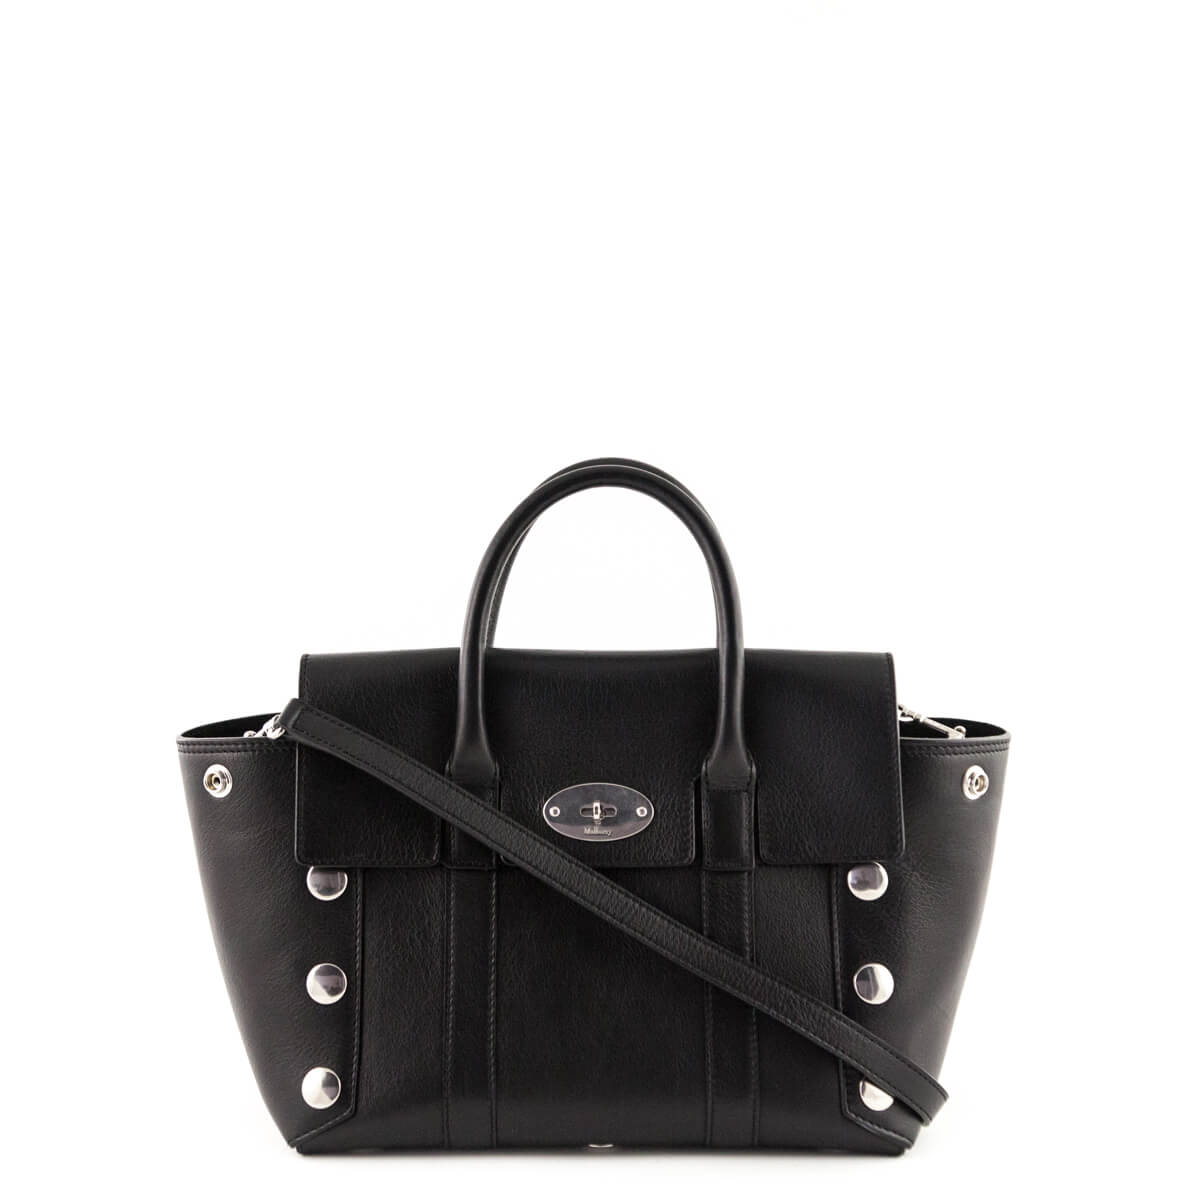 b511d496316f Mulberry Black Calfskin Small Studded New Bayswater Tote - LOVE that BAG -  Preowned Authentic Designer ...